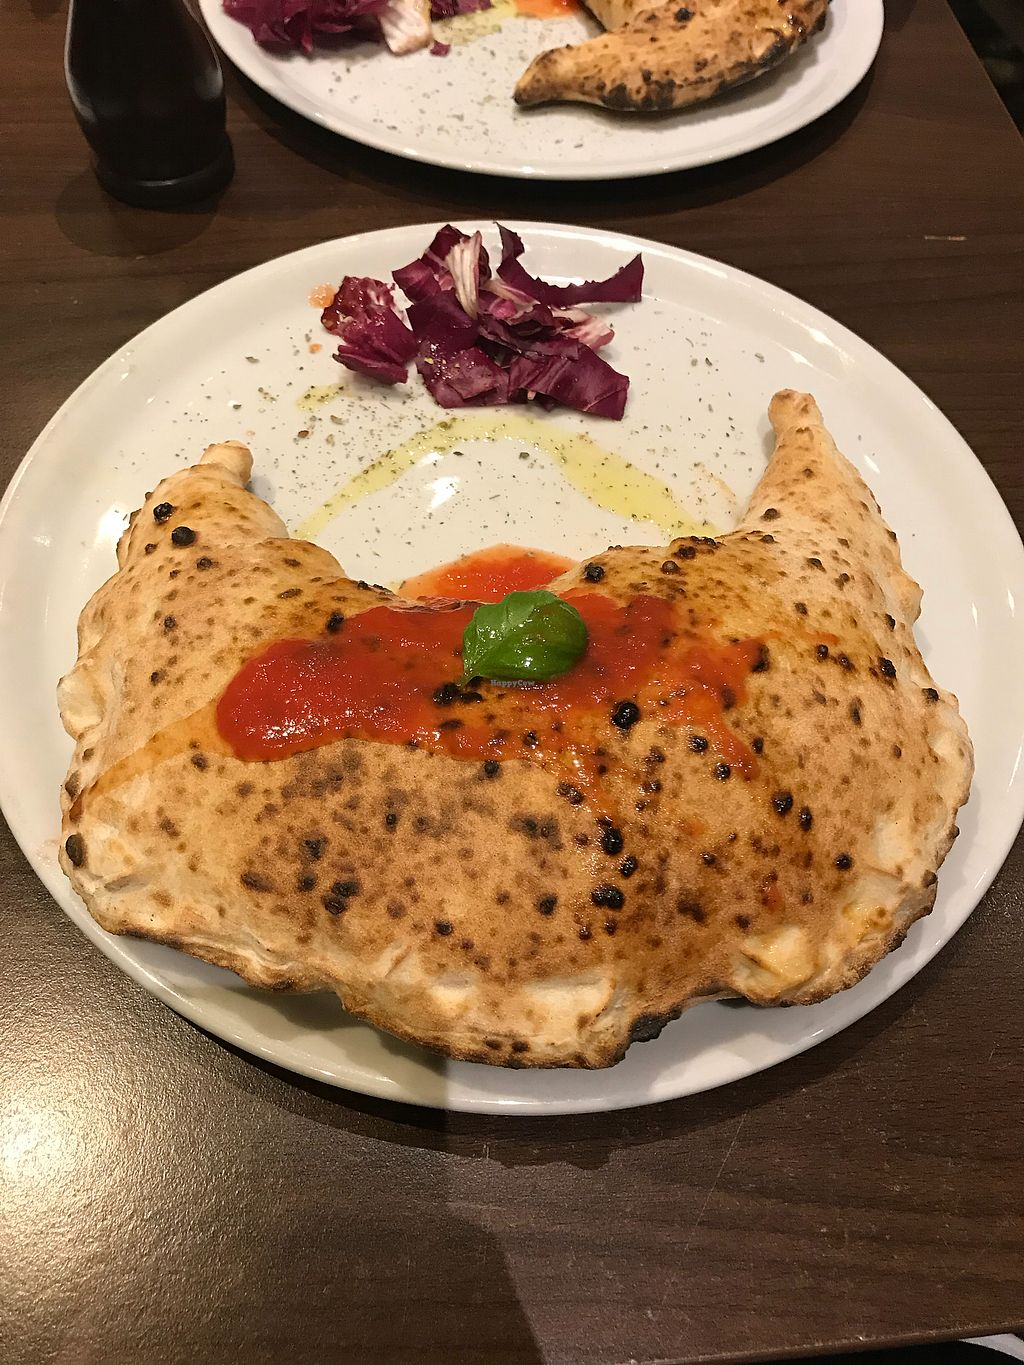 """Photo of La Stella Nera  by <a href=""""/members/profile/JijiVanMeow"""">JijiVanMeow</a> <br/>Calzone time! <br/> February 25, 2018  - <a href='/contact/abuse/image/74041/363507'>Report</a>"""